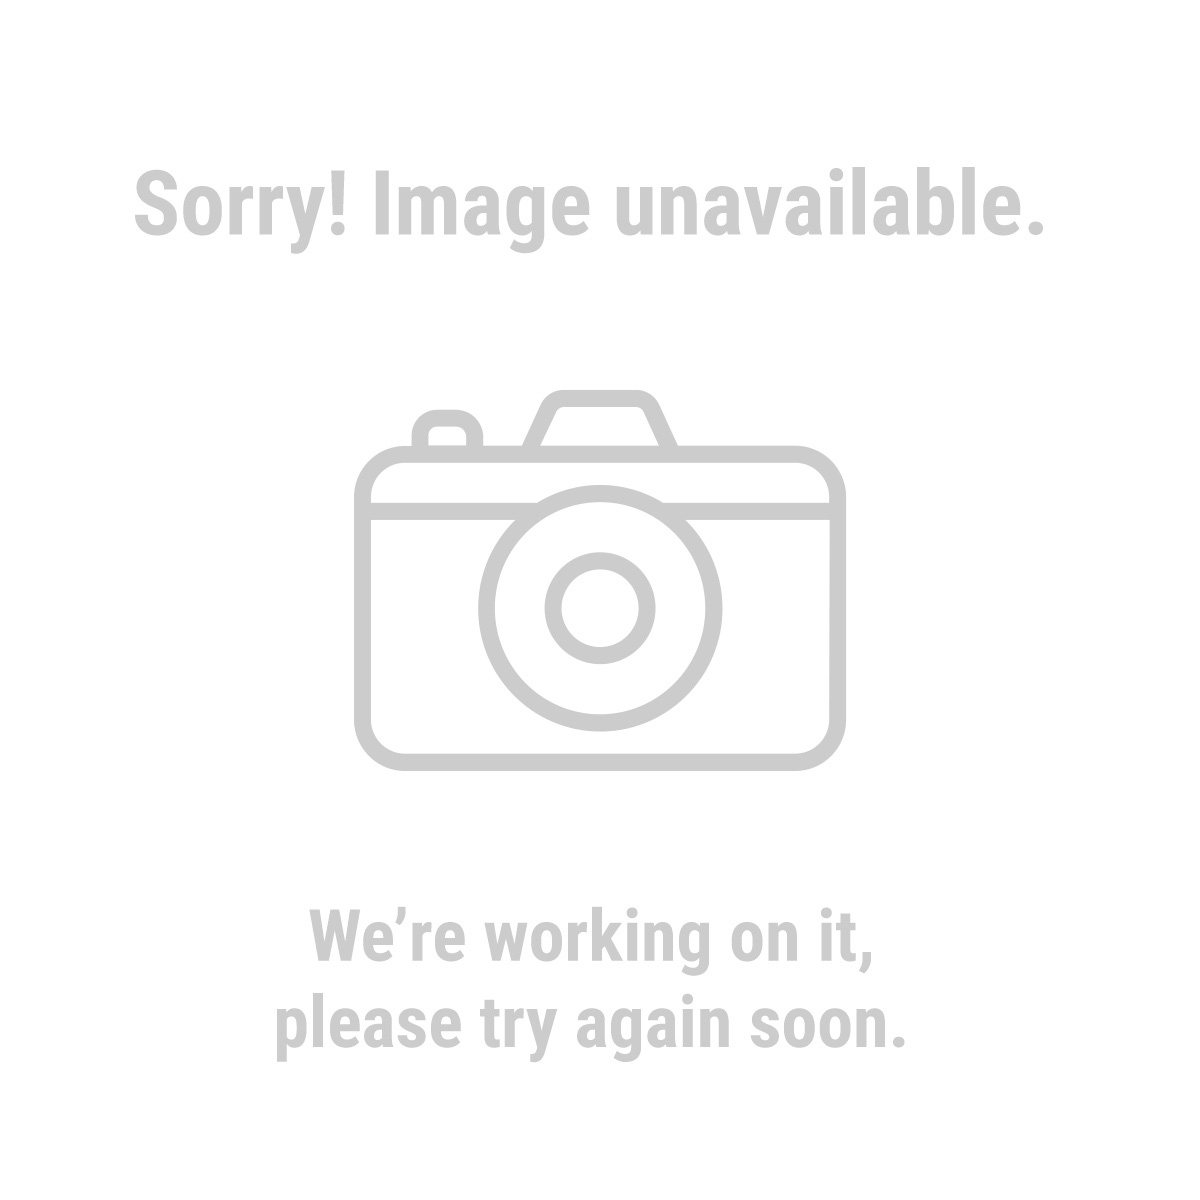 Warrior® 61243 4 in., 24 Tooth Carbide Tipped Circular Saw Blade